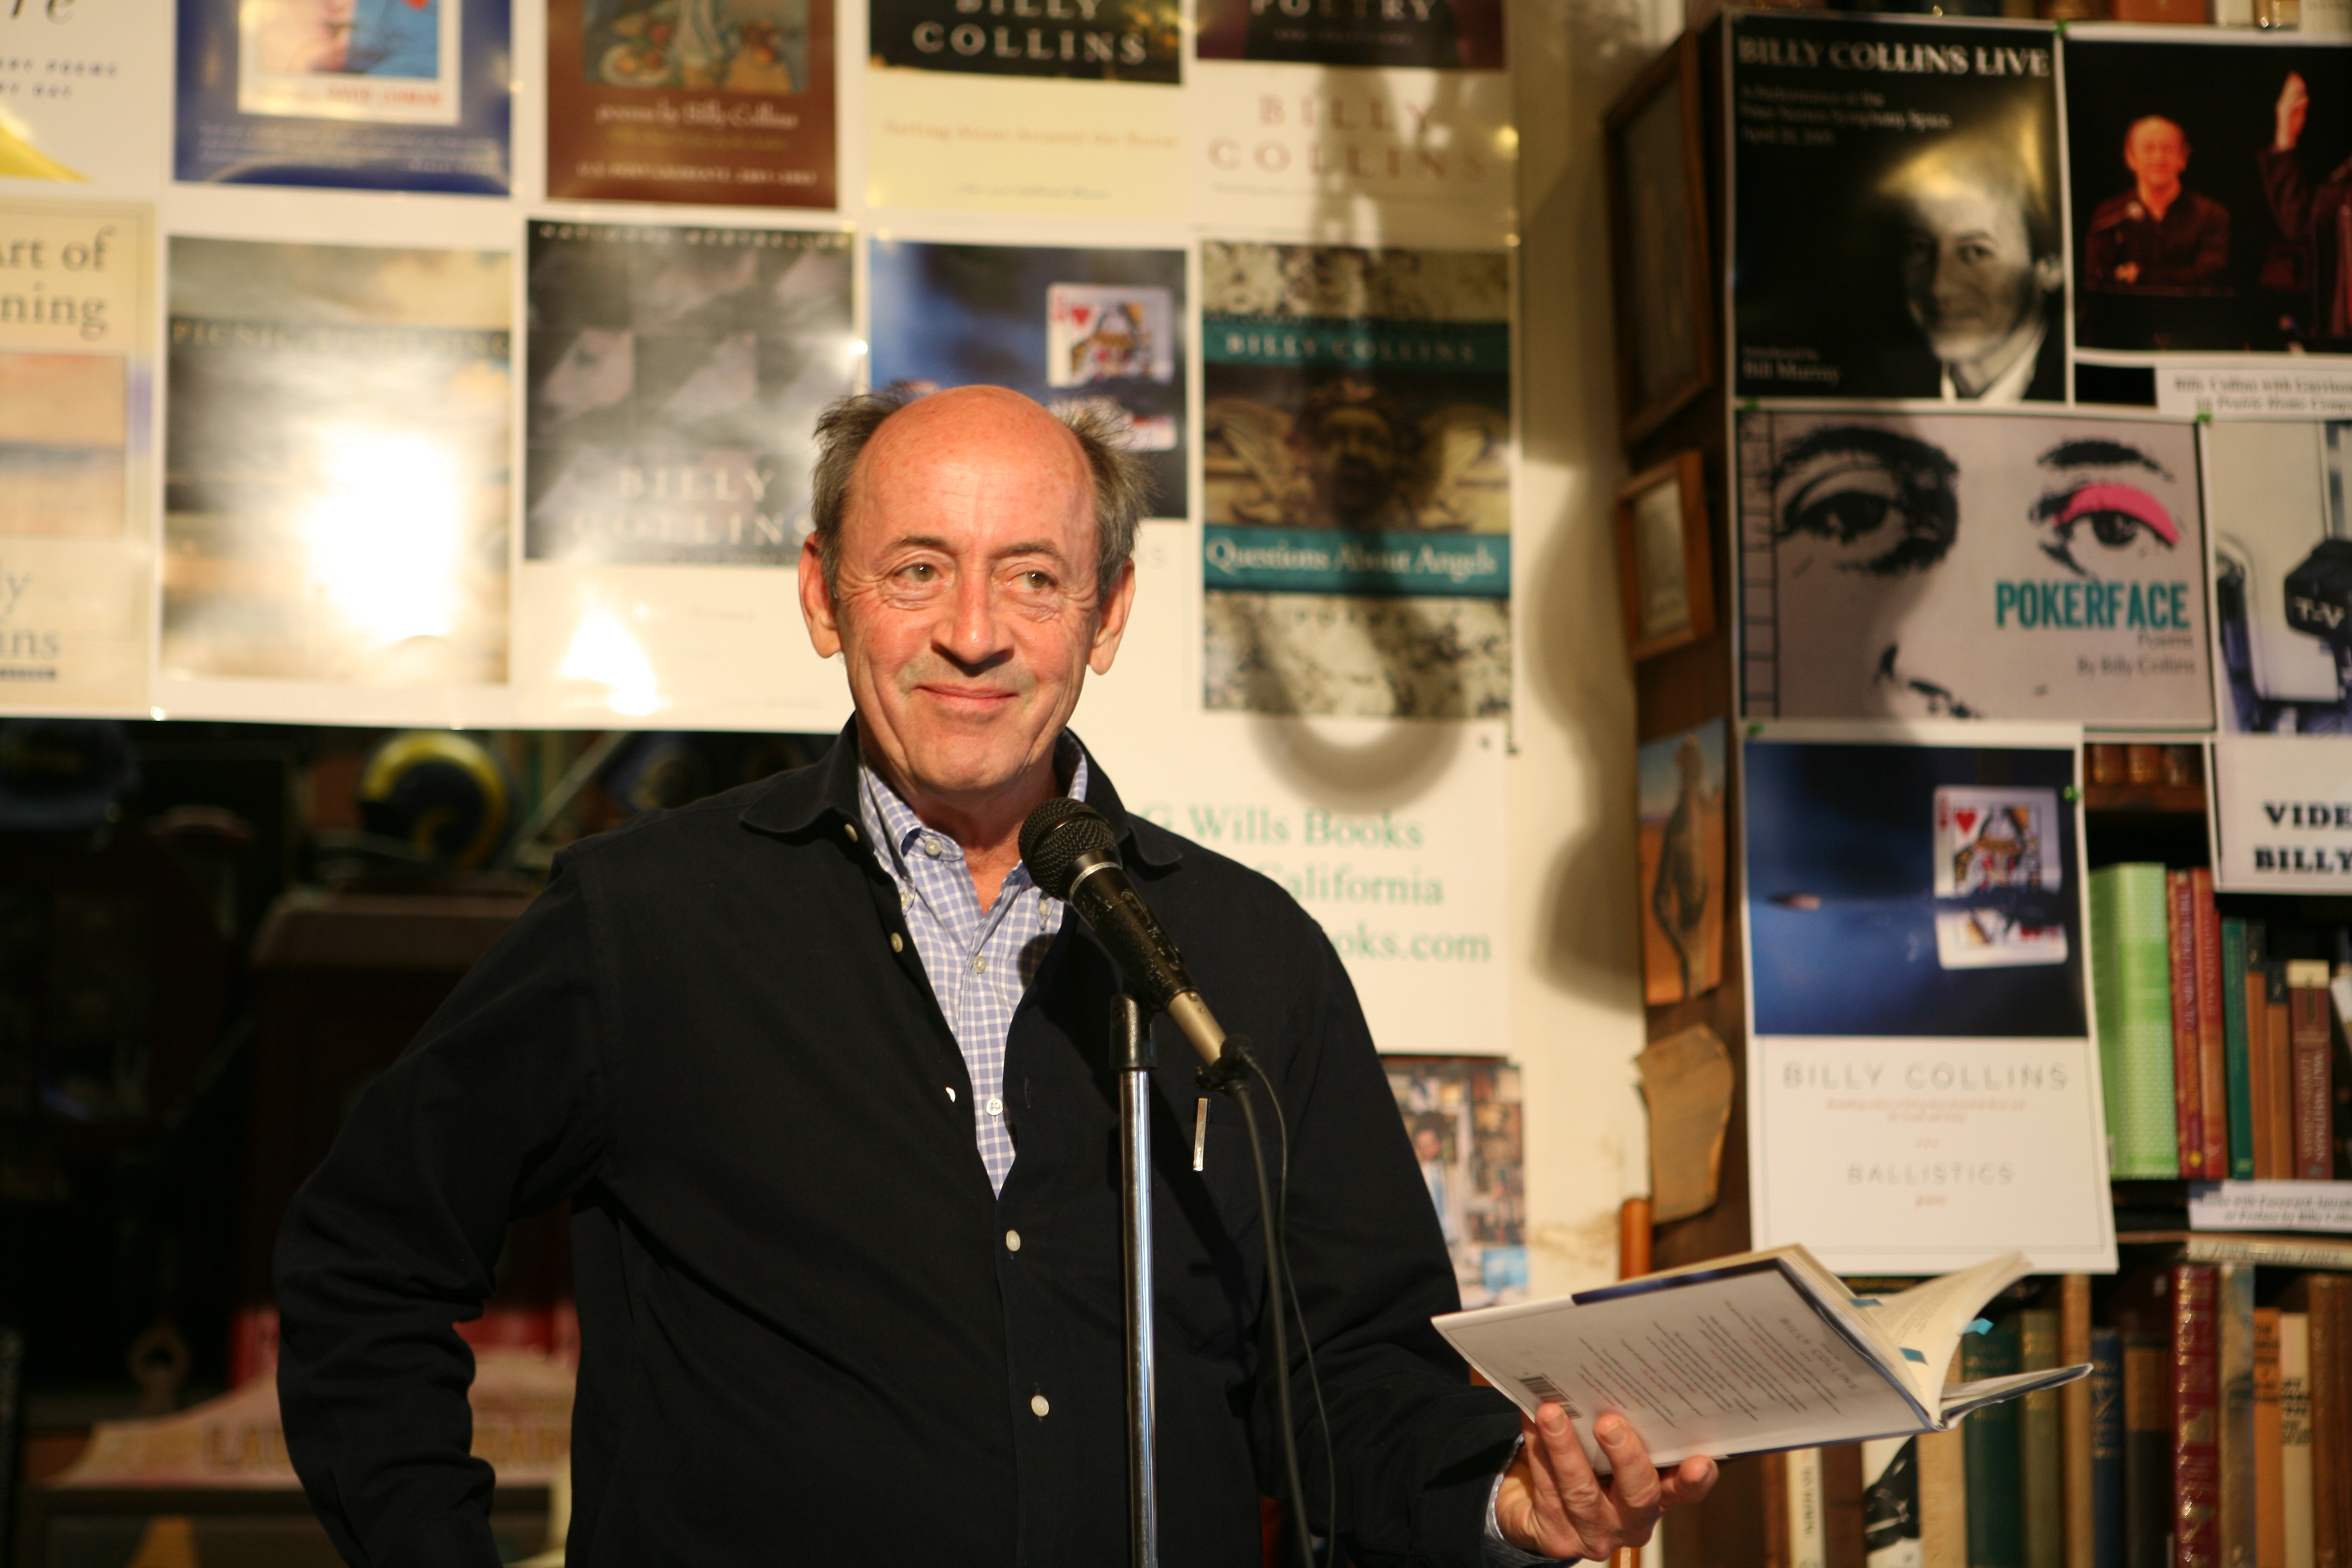 billycollins161.jpg